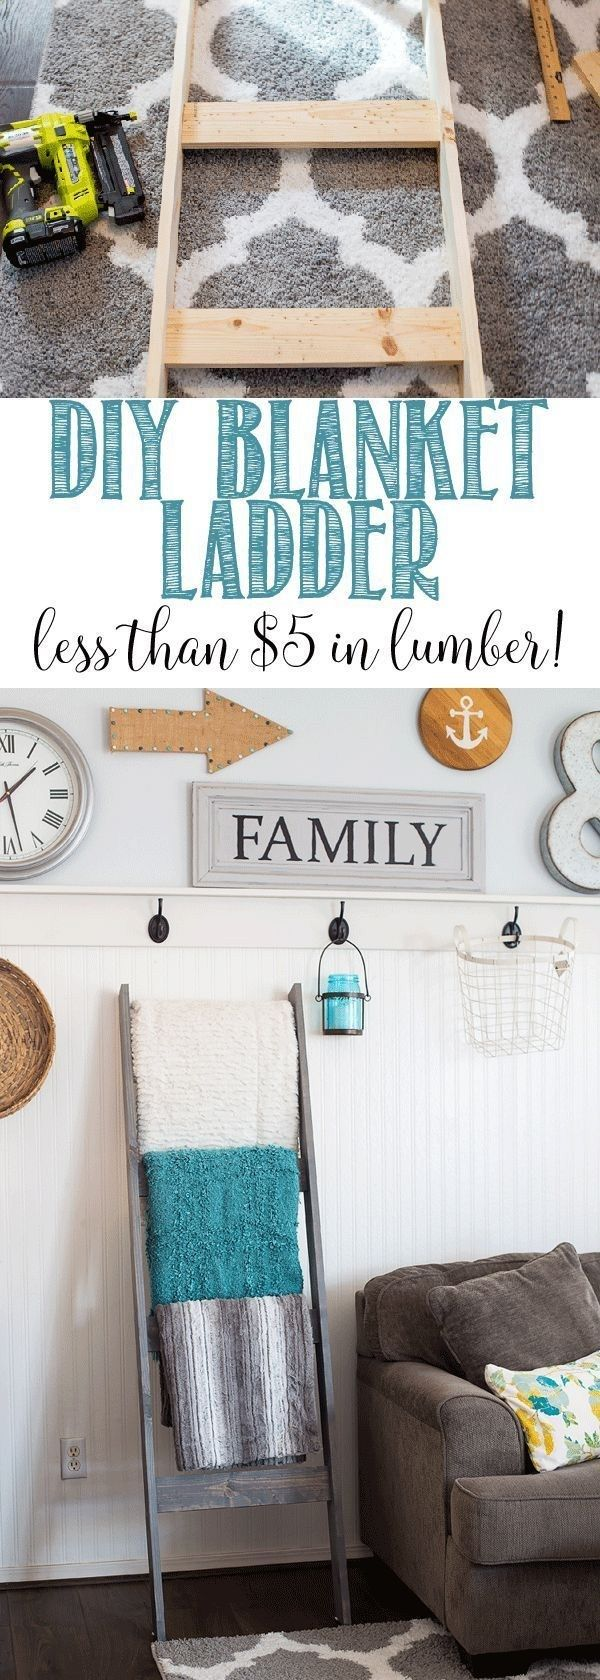 DIY Blanket Ladder for less than 5 in lumber!!!! Great